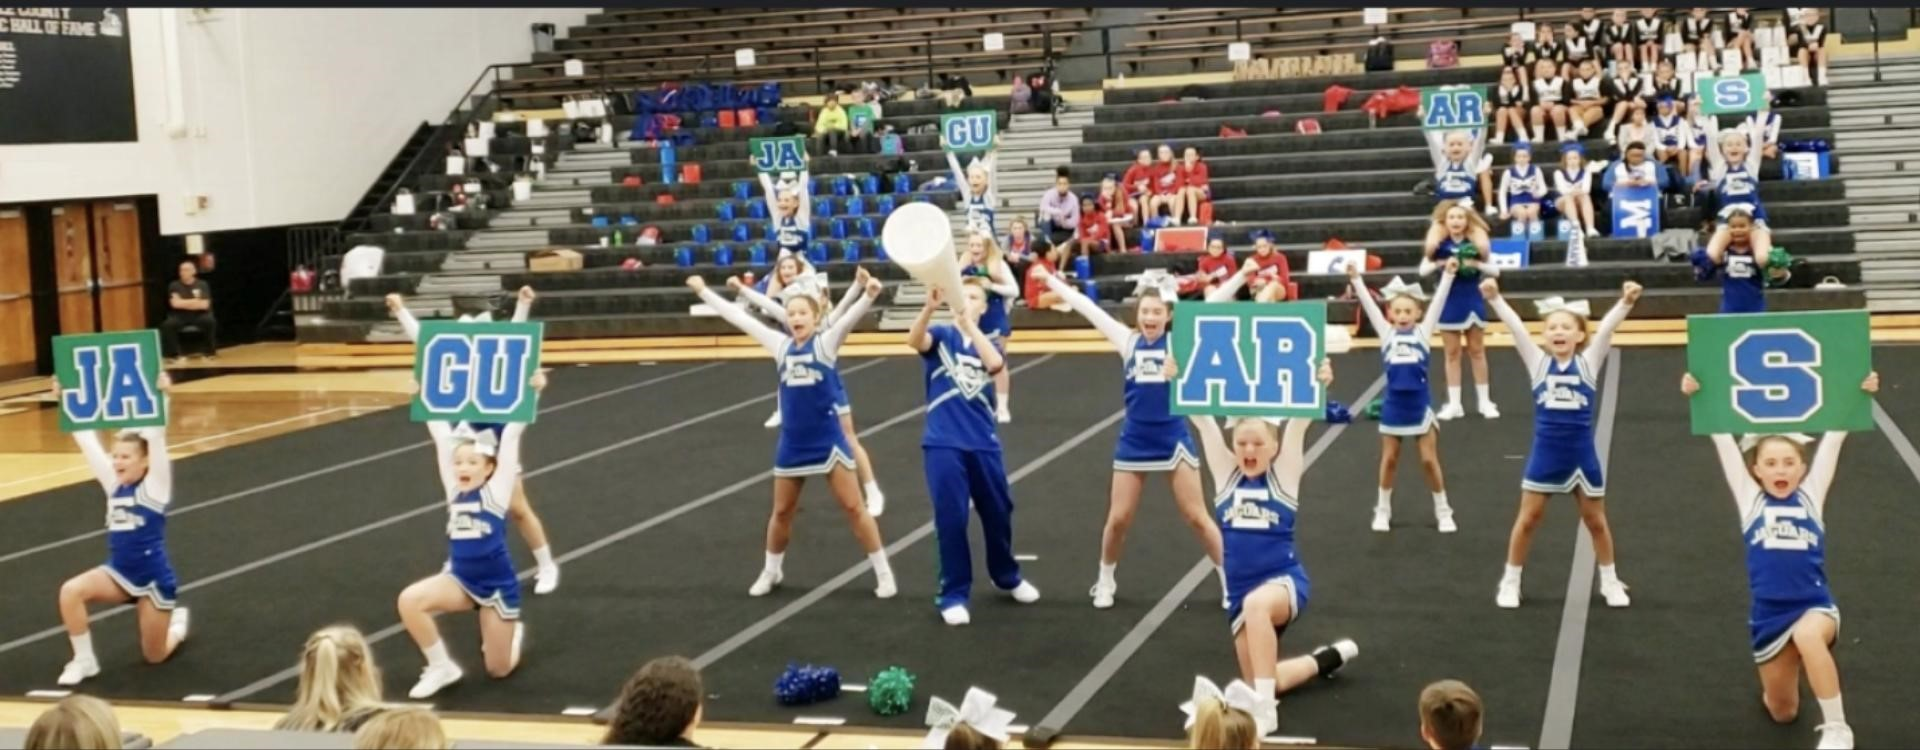 EJMS Cheer Team wins 2019 Grand Prize